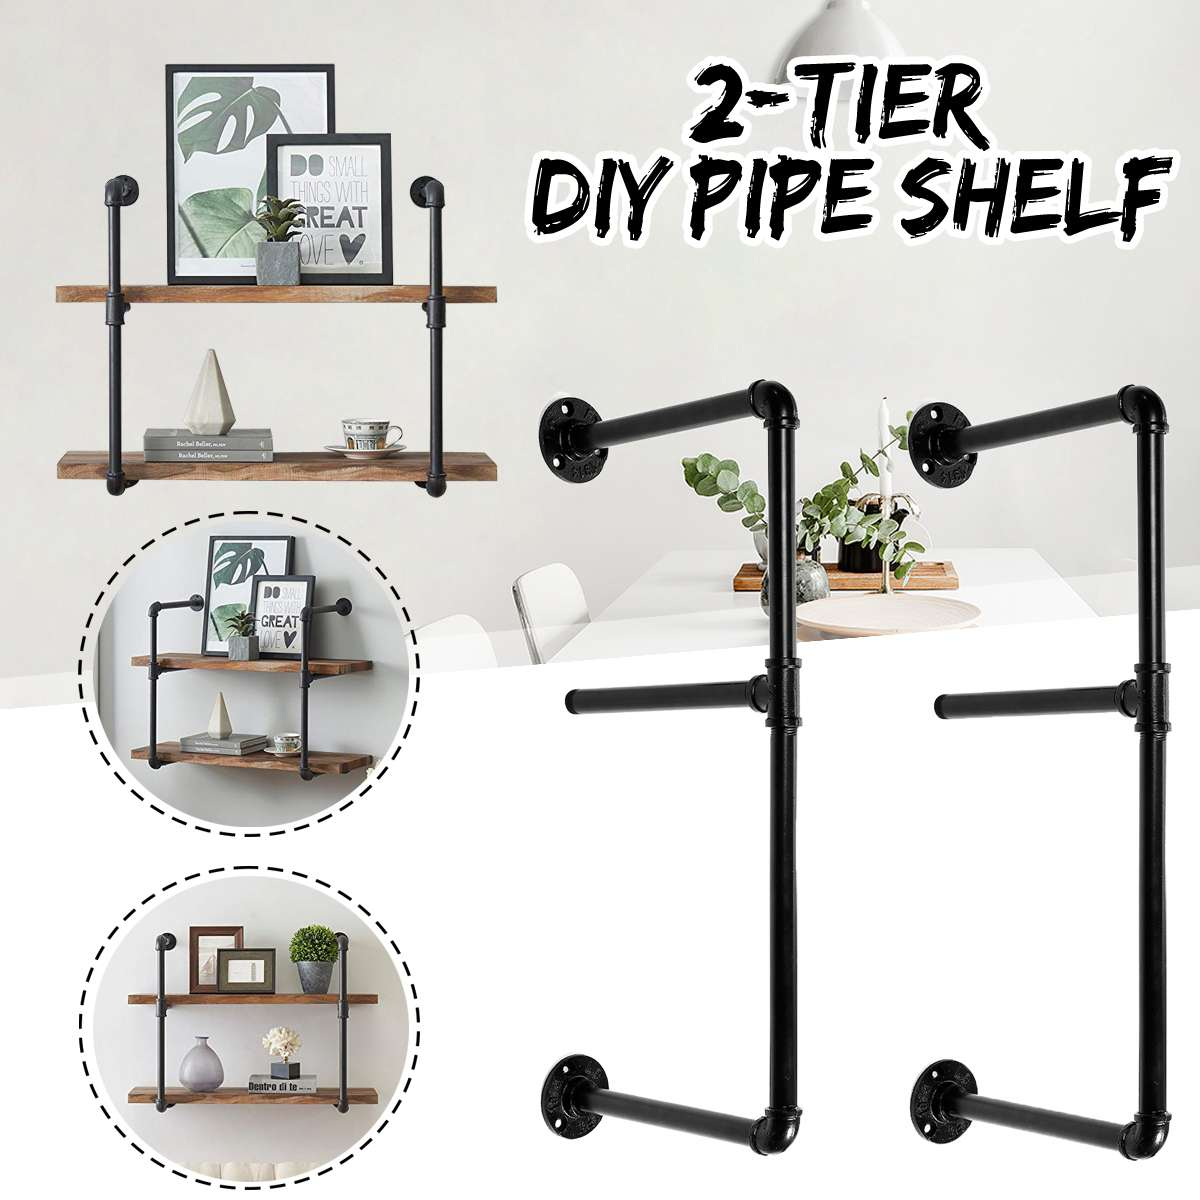 2 PCS 2 Tier Shelf Wall Shelf Bracket Hanging Storage Shelves Iron Pipe Black DIY Pipe Shelves Furniture Home2 PCS 2 Tier Shelf Wall Shelf Bracket Hanging Storage Shelves Iron Pipe Black DIY Pipe Shelves Furniture Home